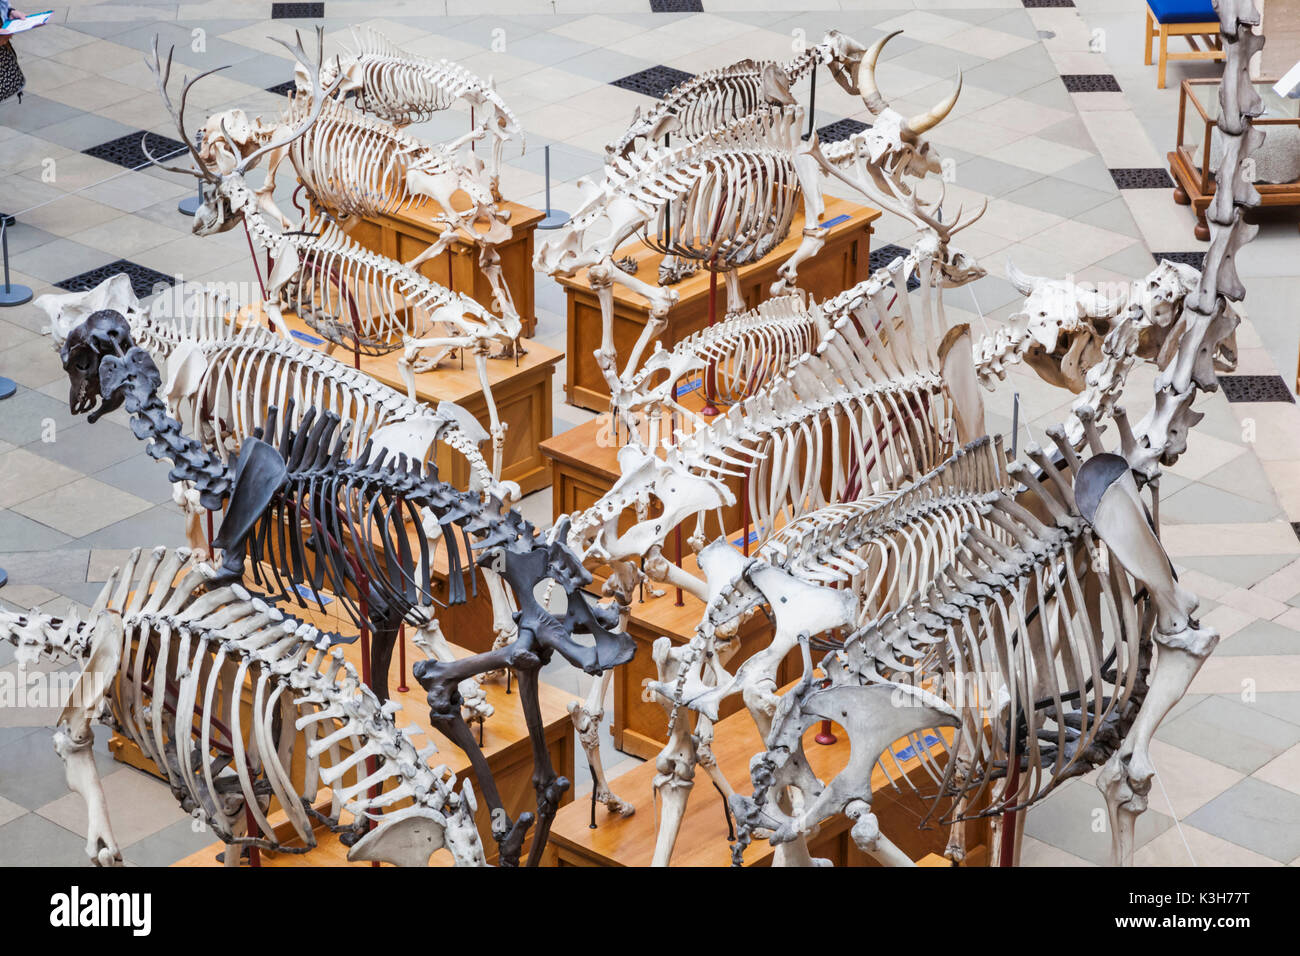 England, Oxfordshire, Oxford, Museum of Natural History, Display of Animal Skeletons - Stock Image